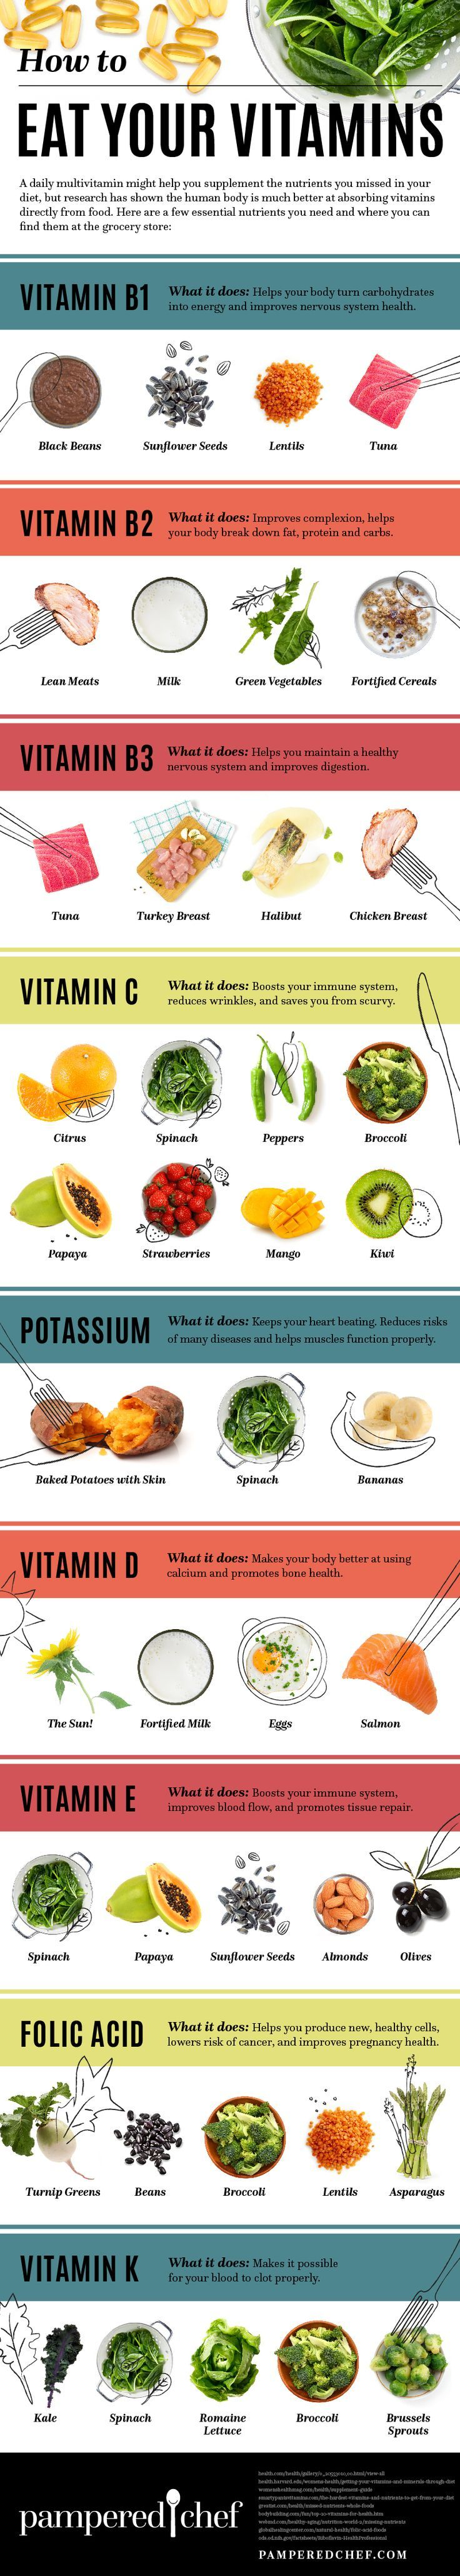 Are you getting your vitamin D? How about E? Know what foods you can eat to be sure you're getting all your essential vitamins with this infographic.